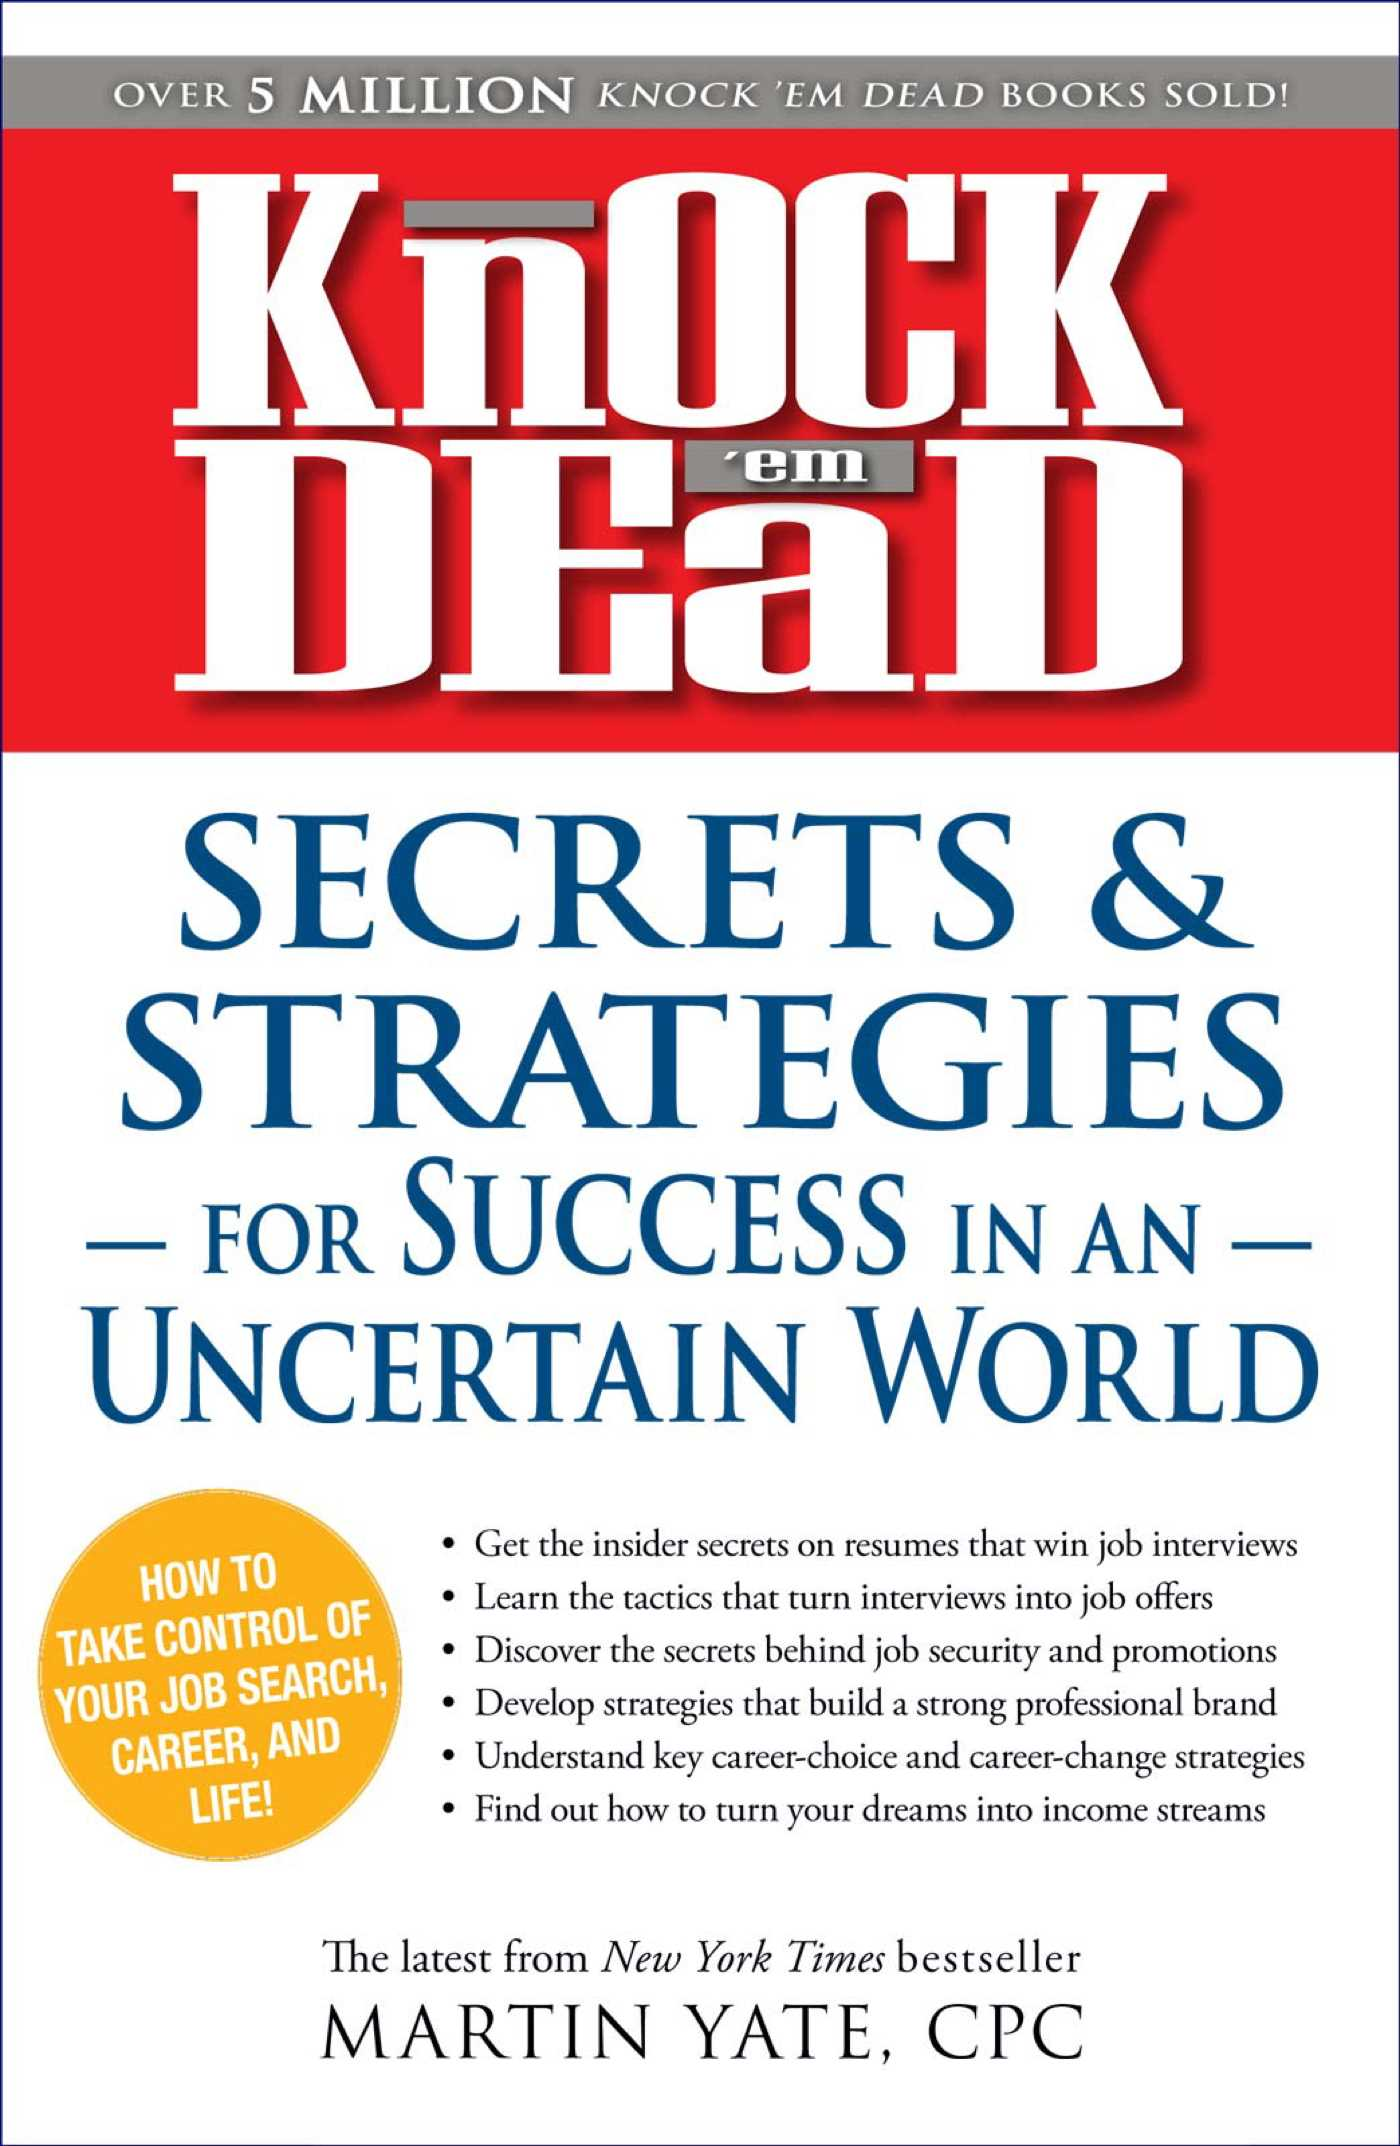 book of dead strategie